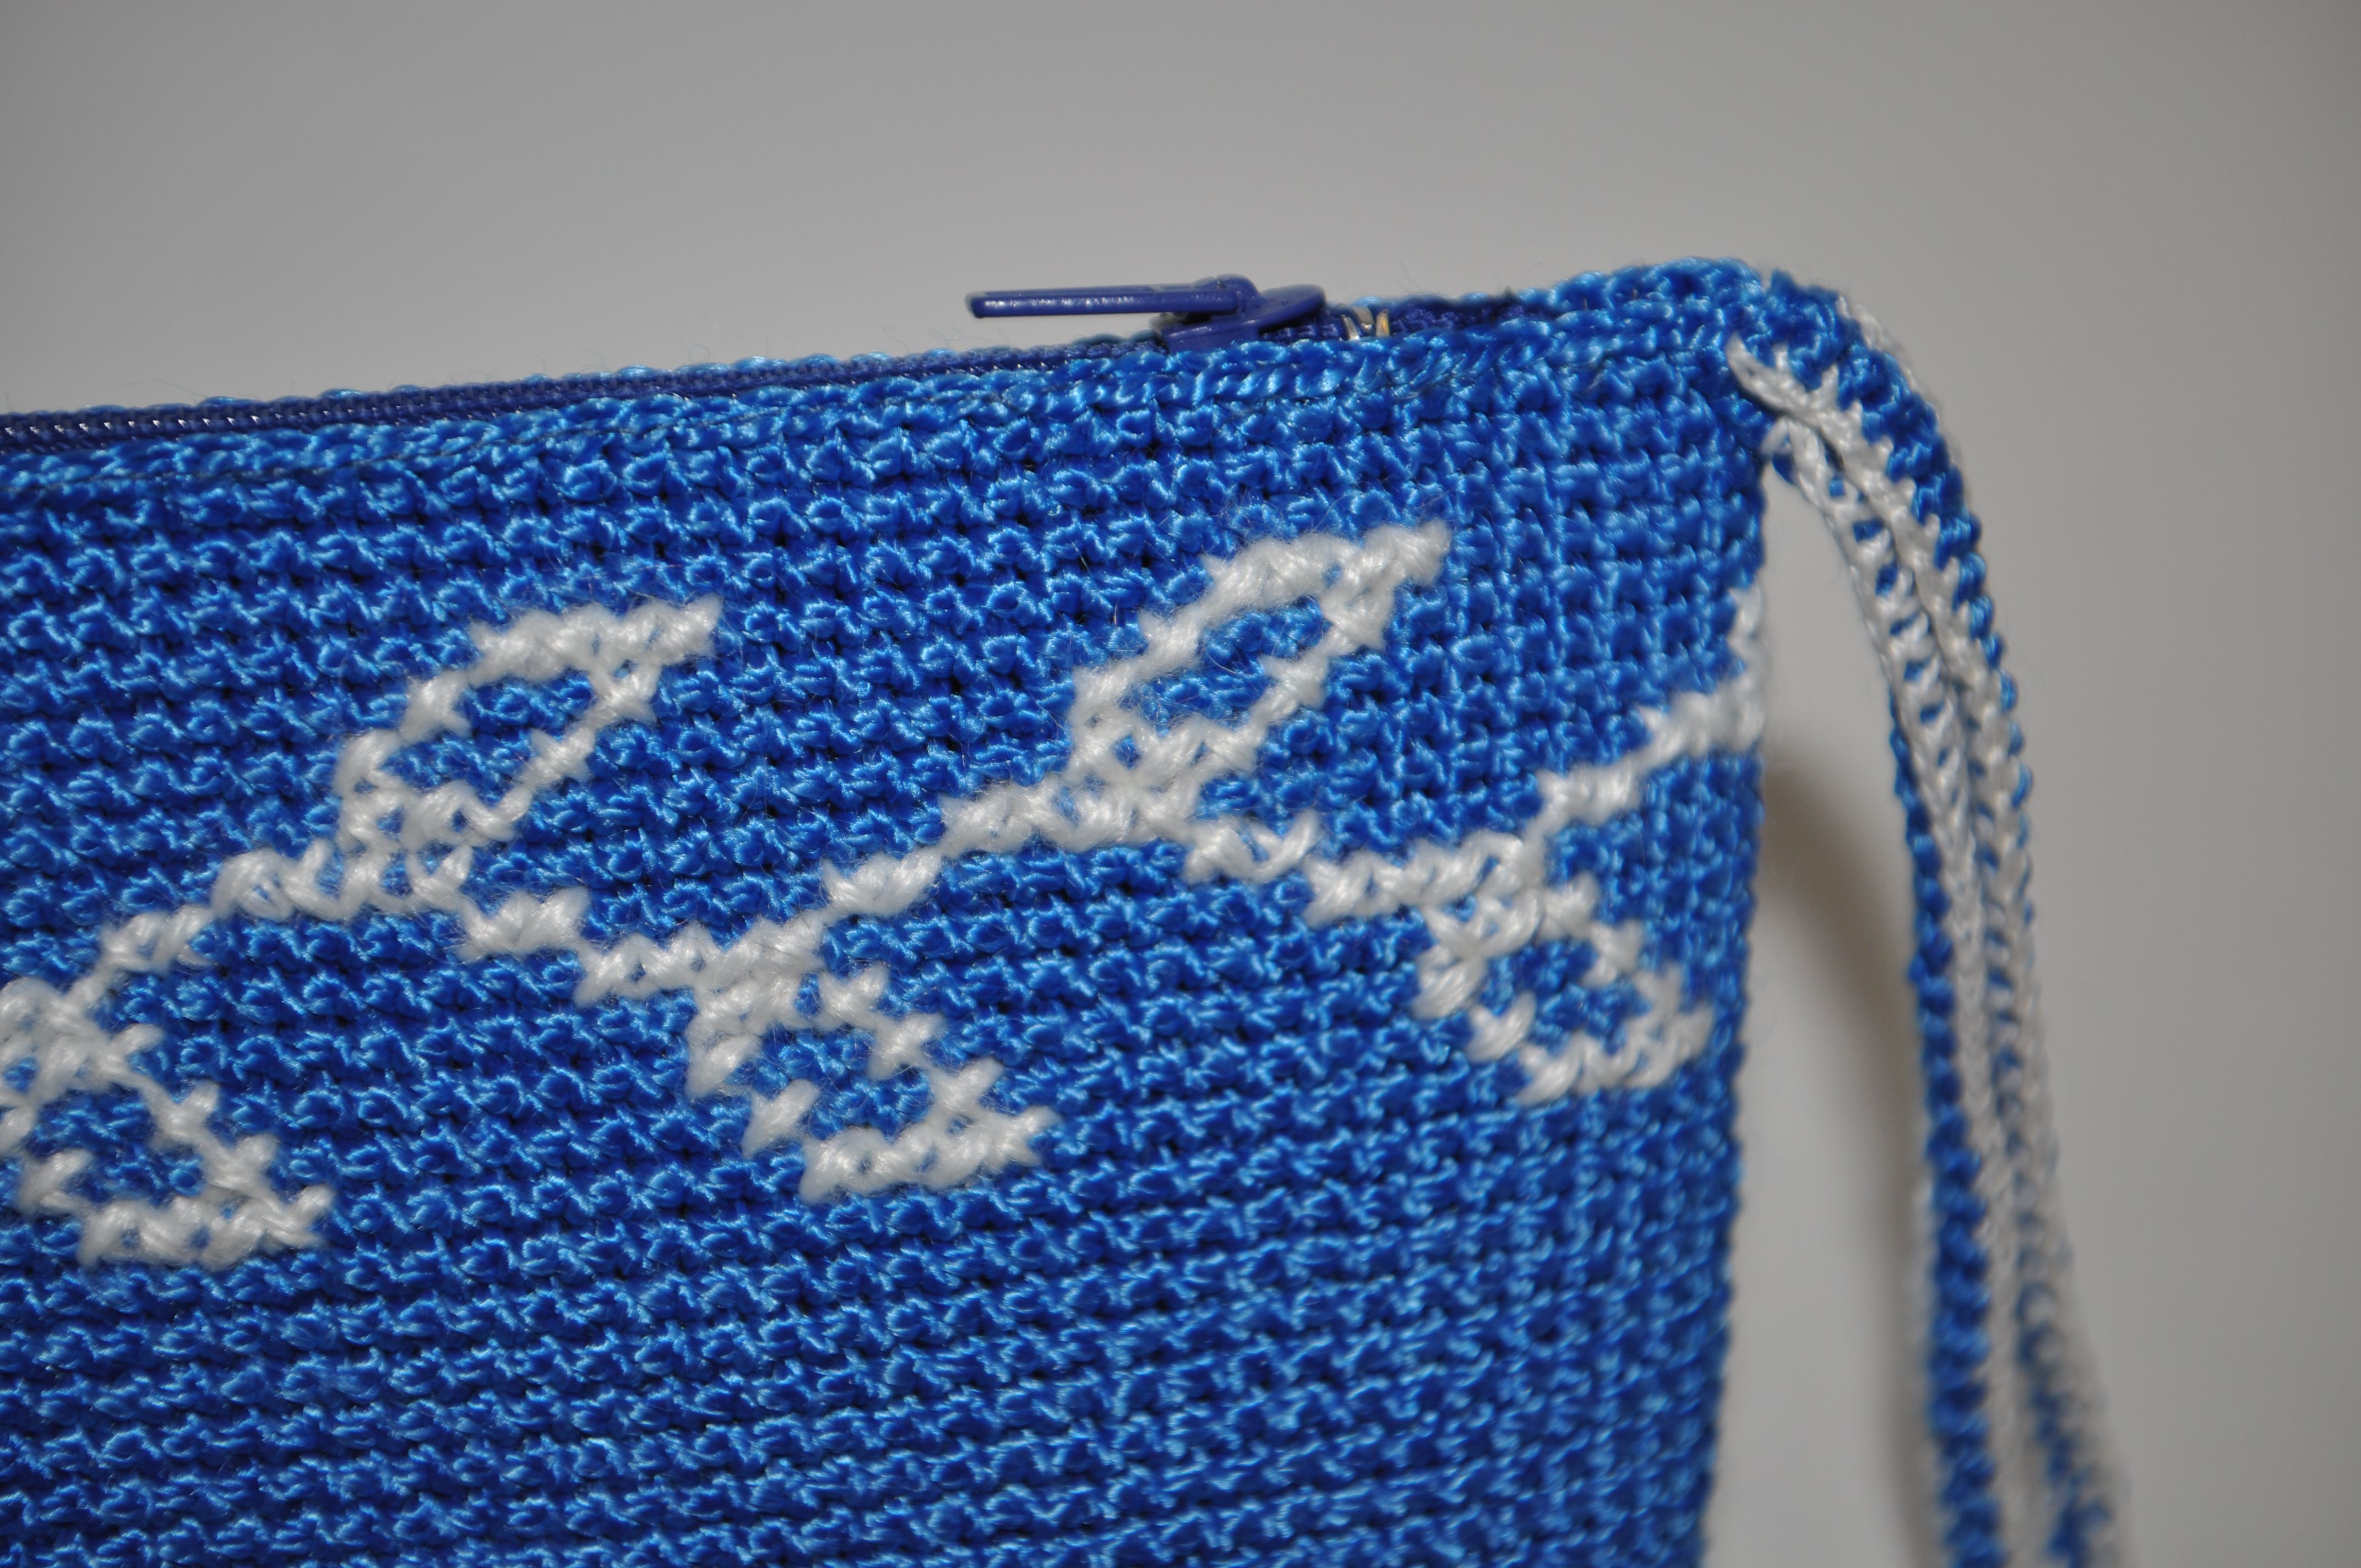 handmade gift bag souvenir embroidery cosmetics christmas blue holiday clutch crocheted newtear cosmeticsbag crossstitch zip knit white